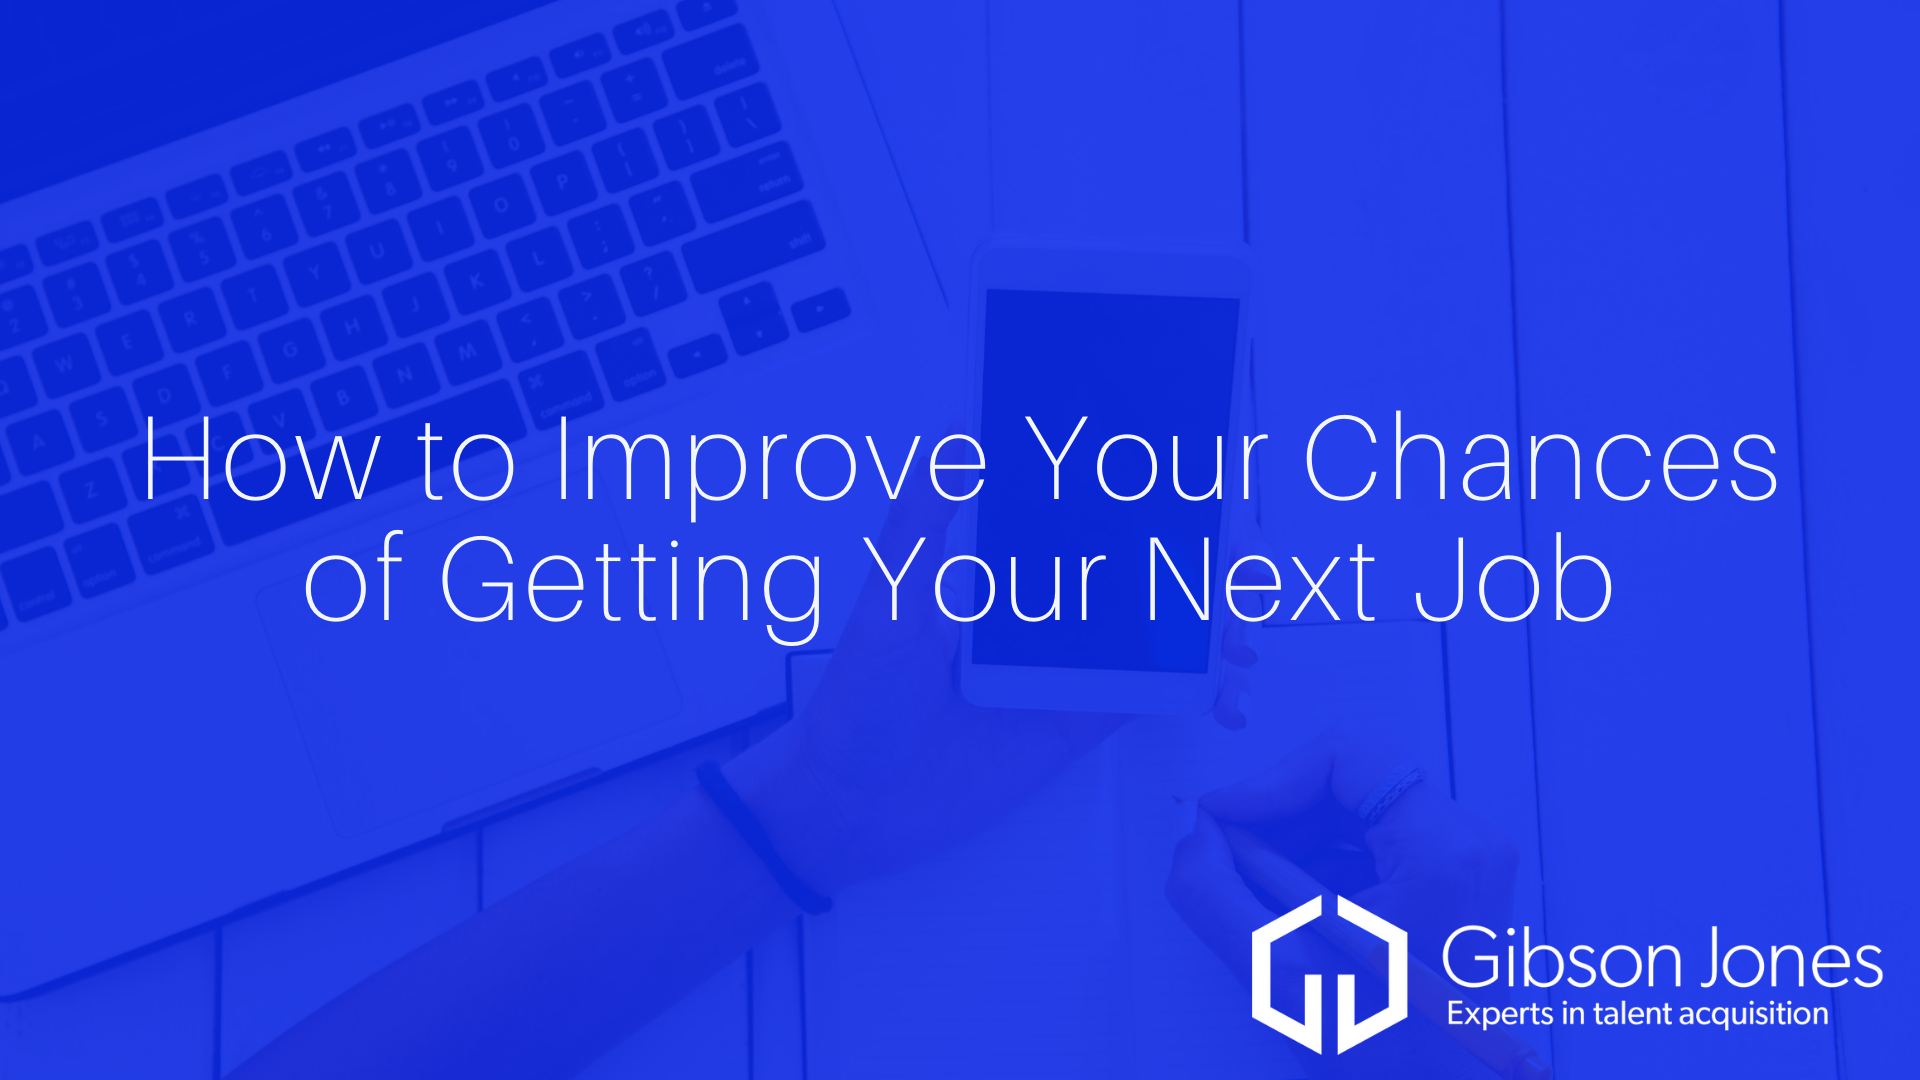 How to Improve Your Chances of Getting a Job